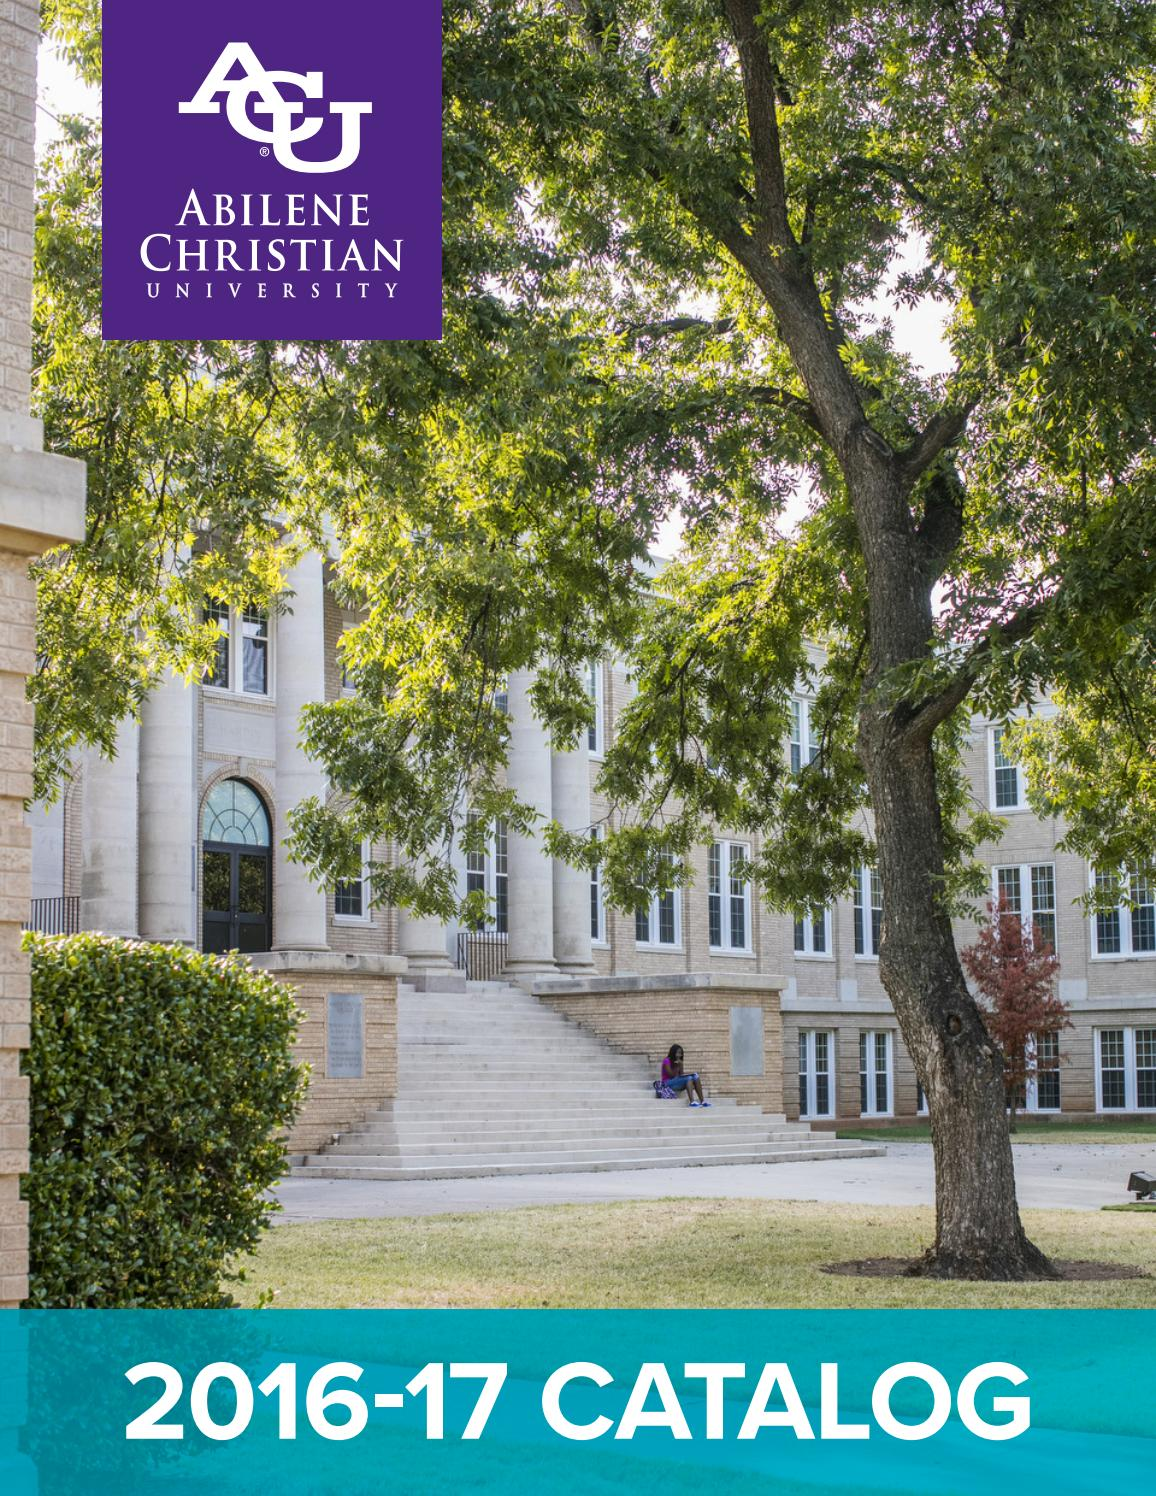 Abilene Christian University Tuition >> 2016 17 Catalog By Abilene Christian University Issuu